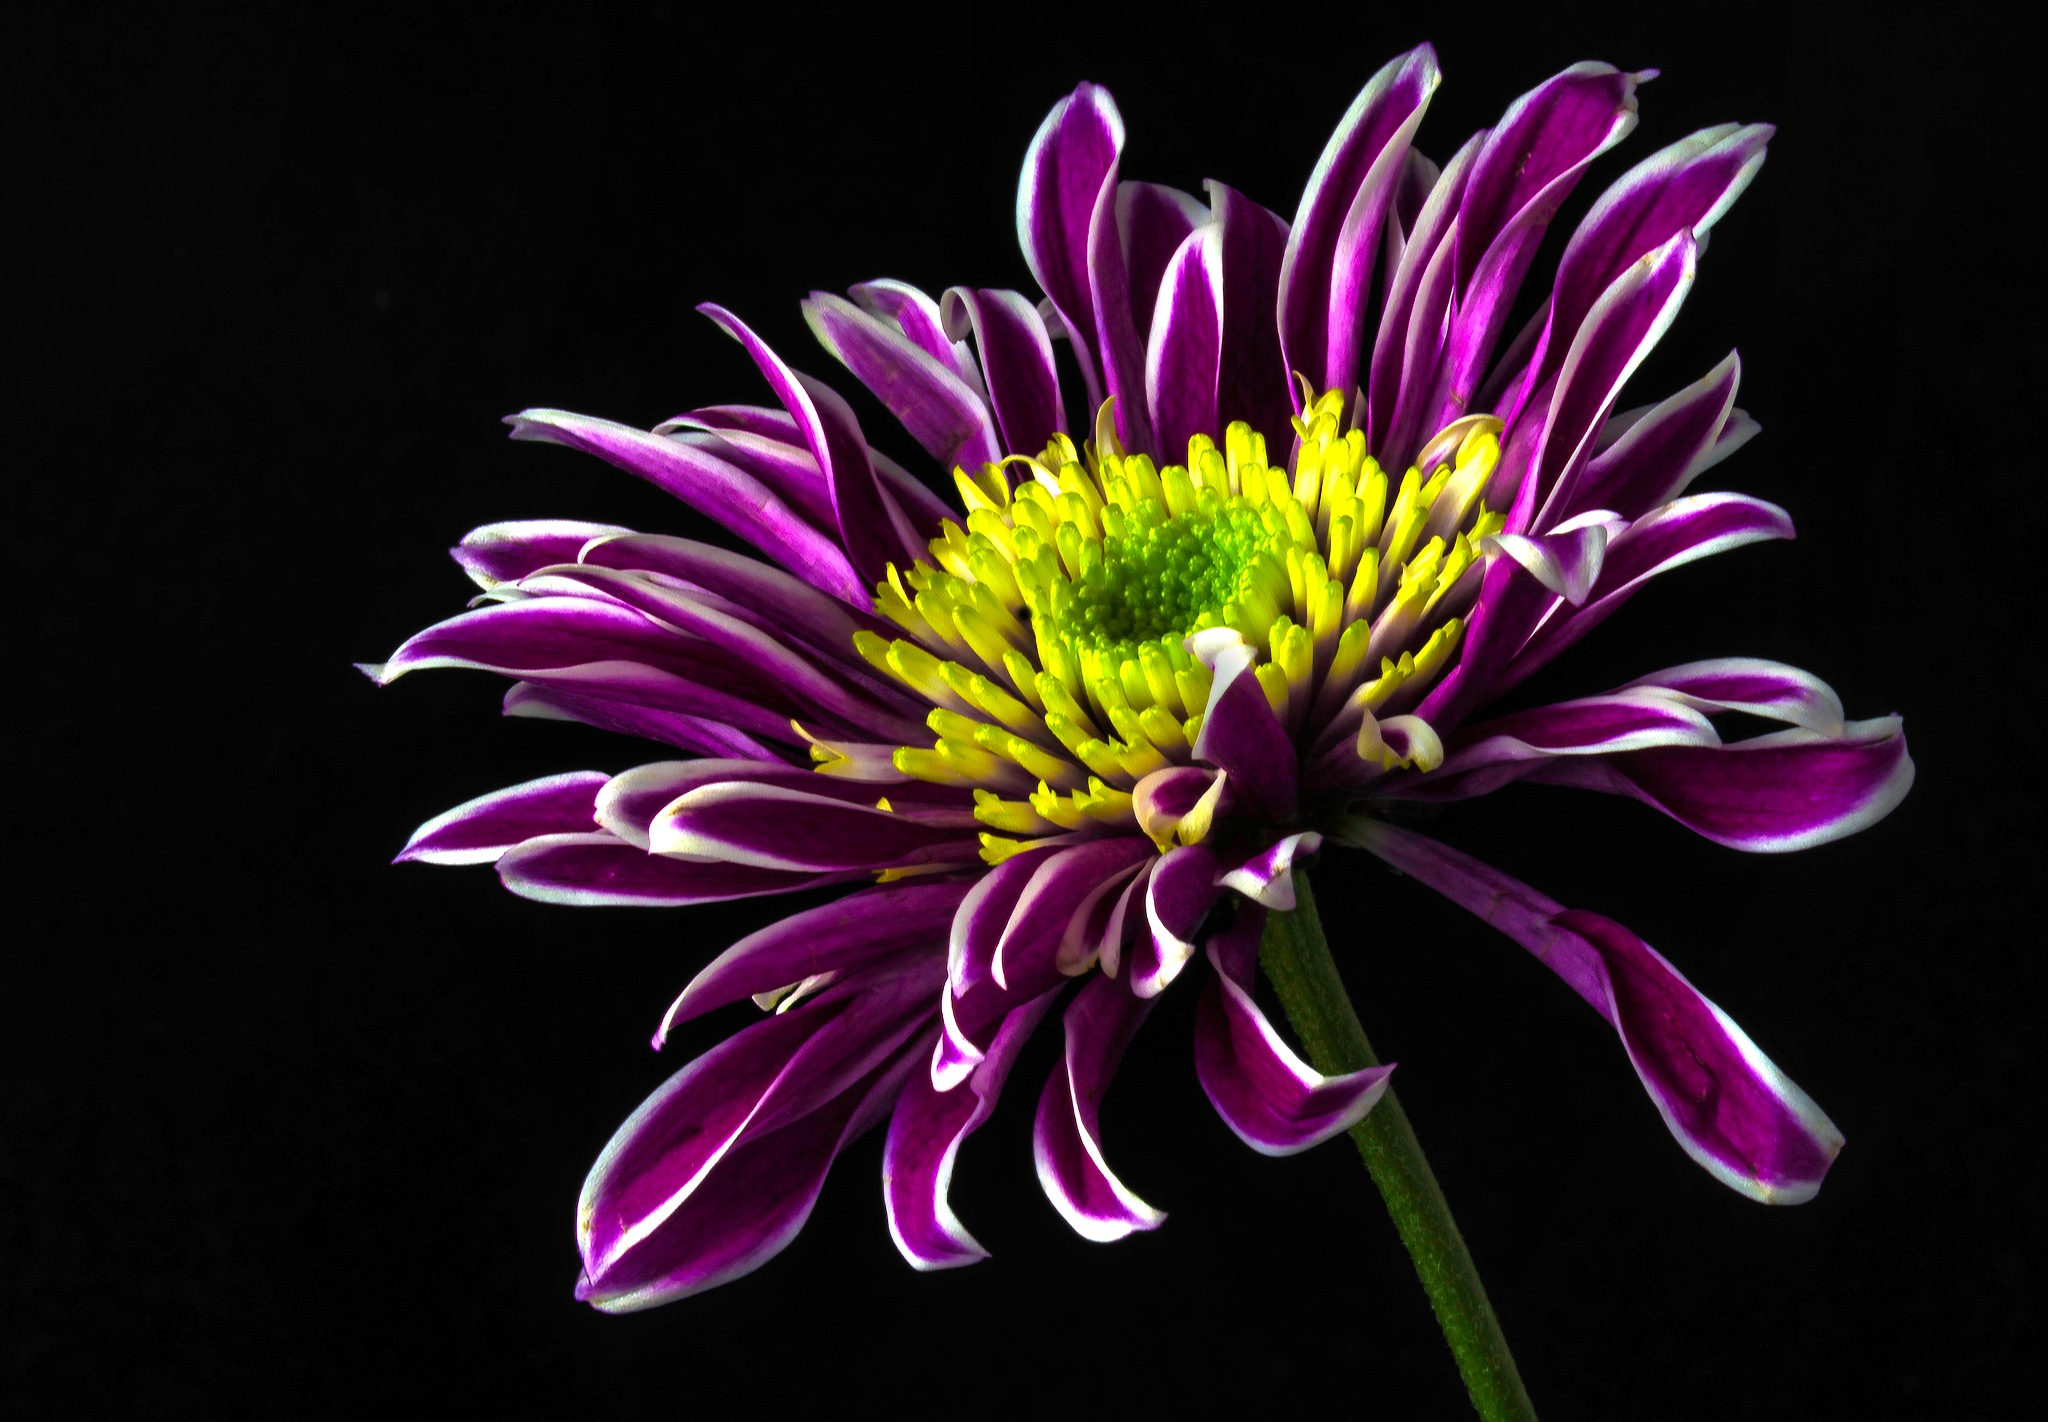 Chrysanthemum 2 by John Roberts